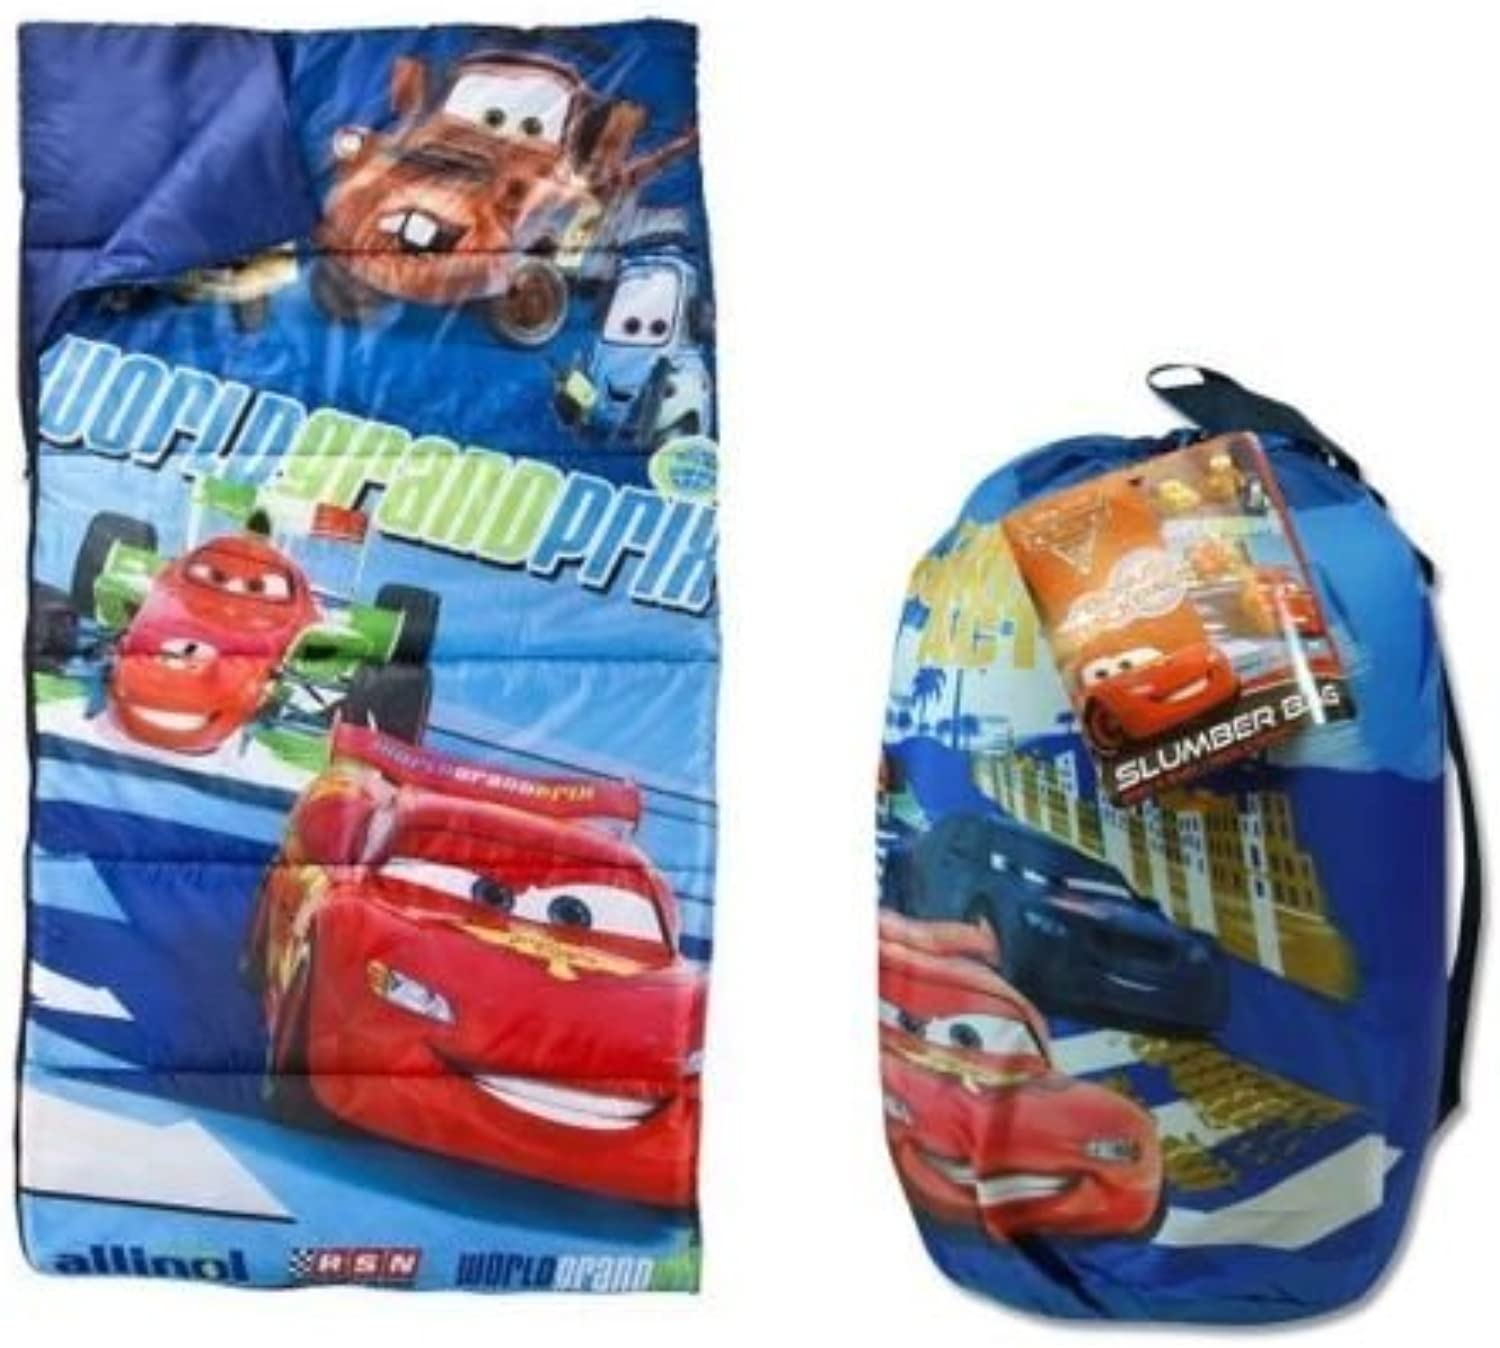 Disney Cars 2Mater Grand Prix Sleeping Slumber Bag by Disney